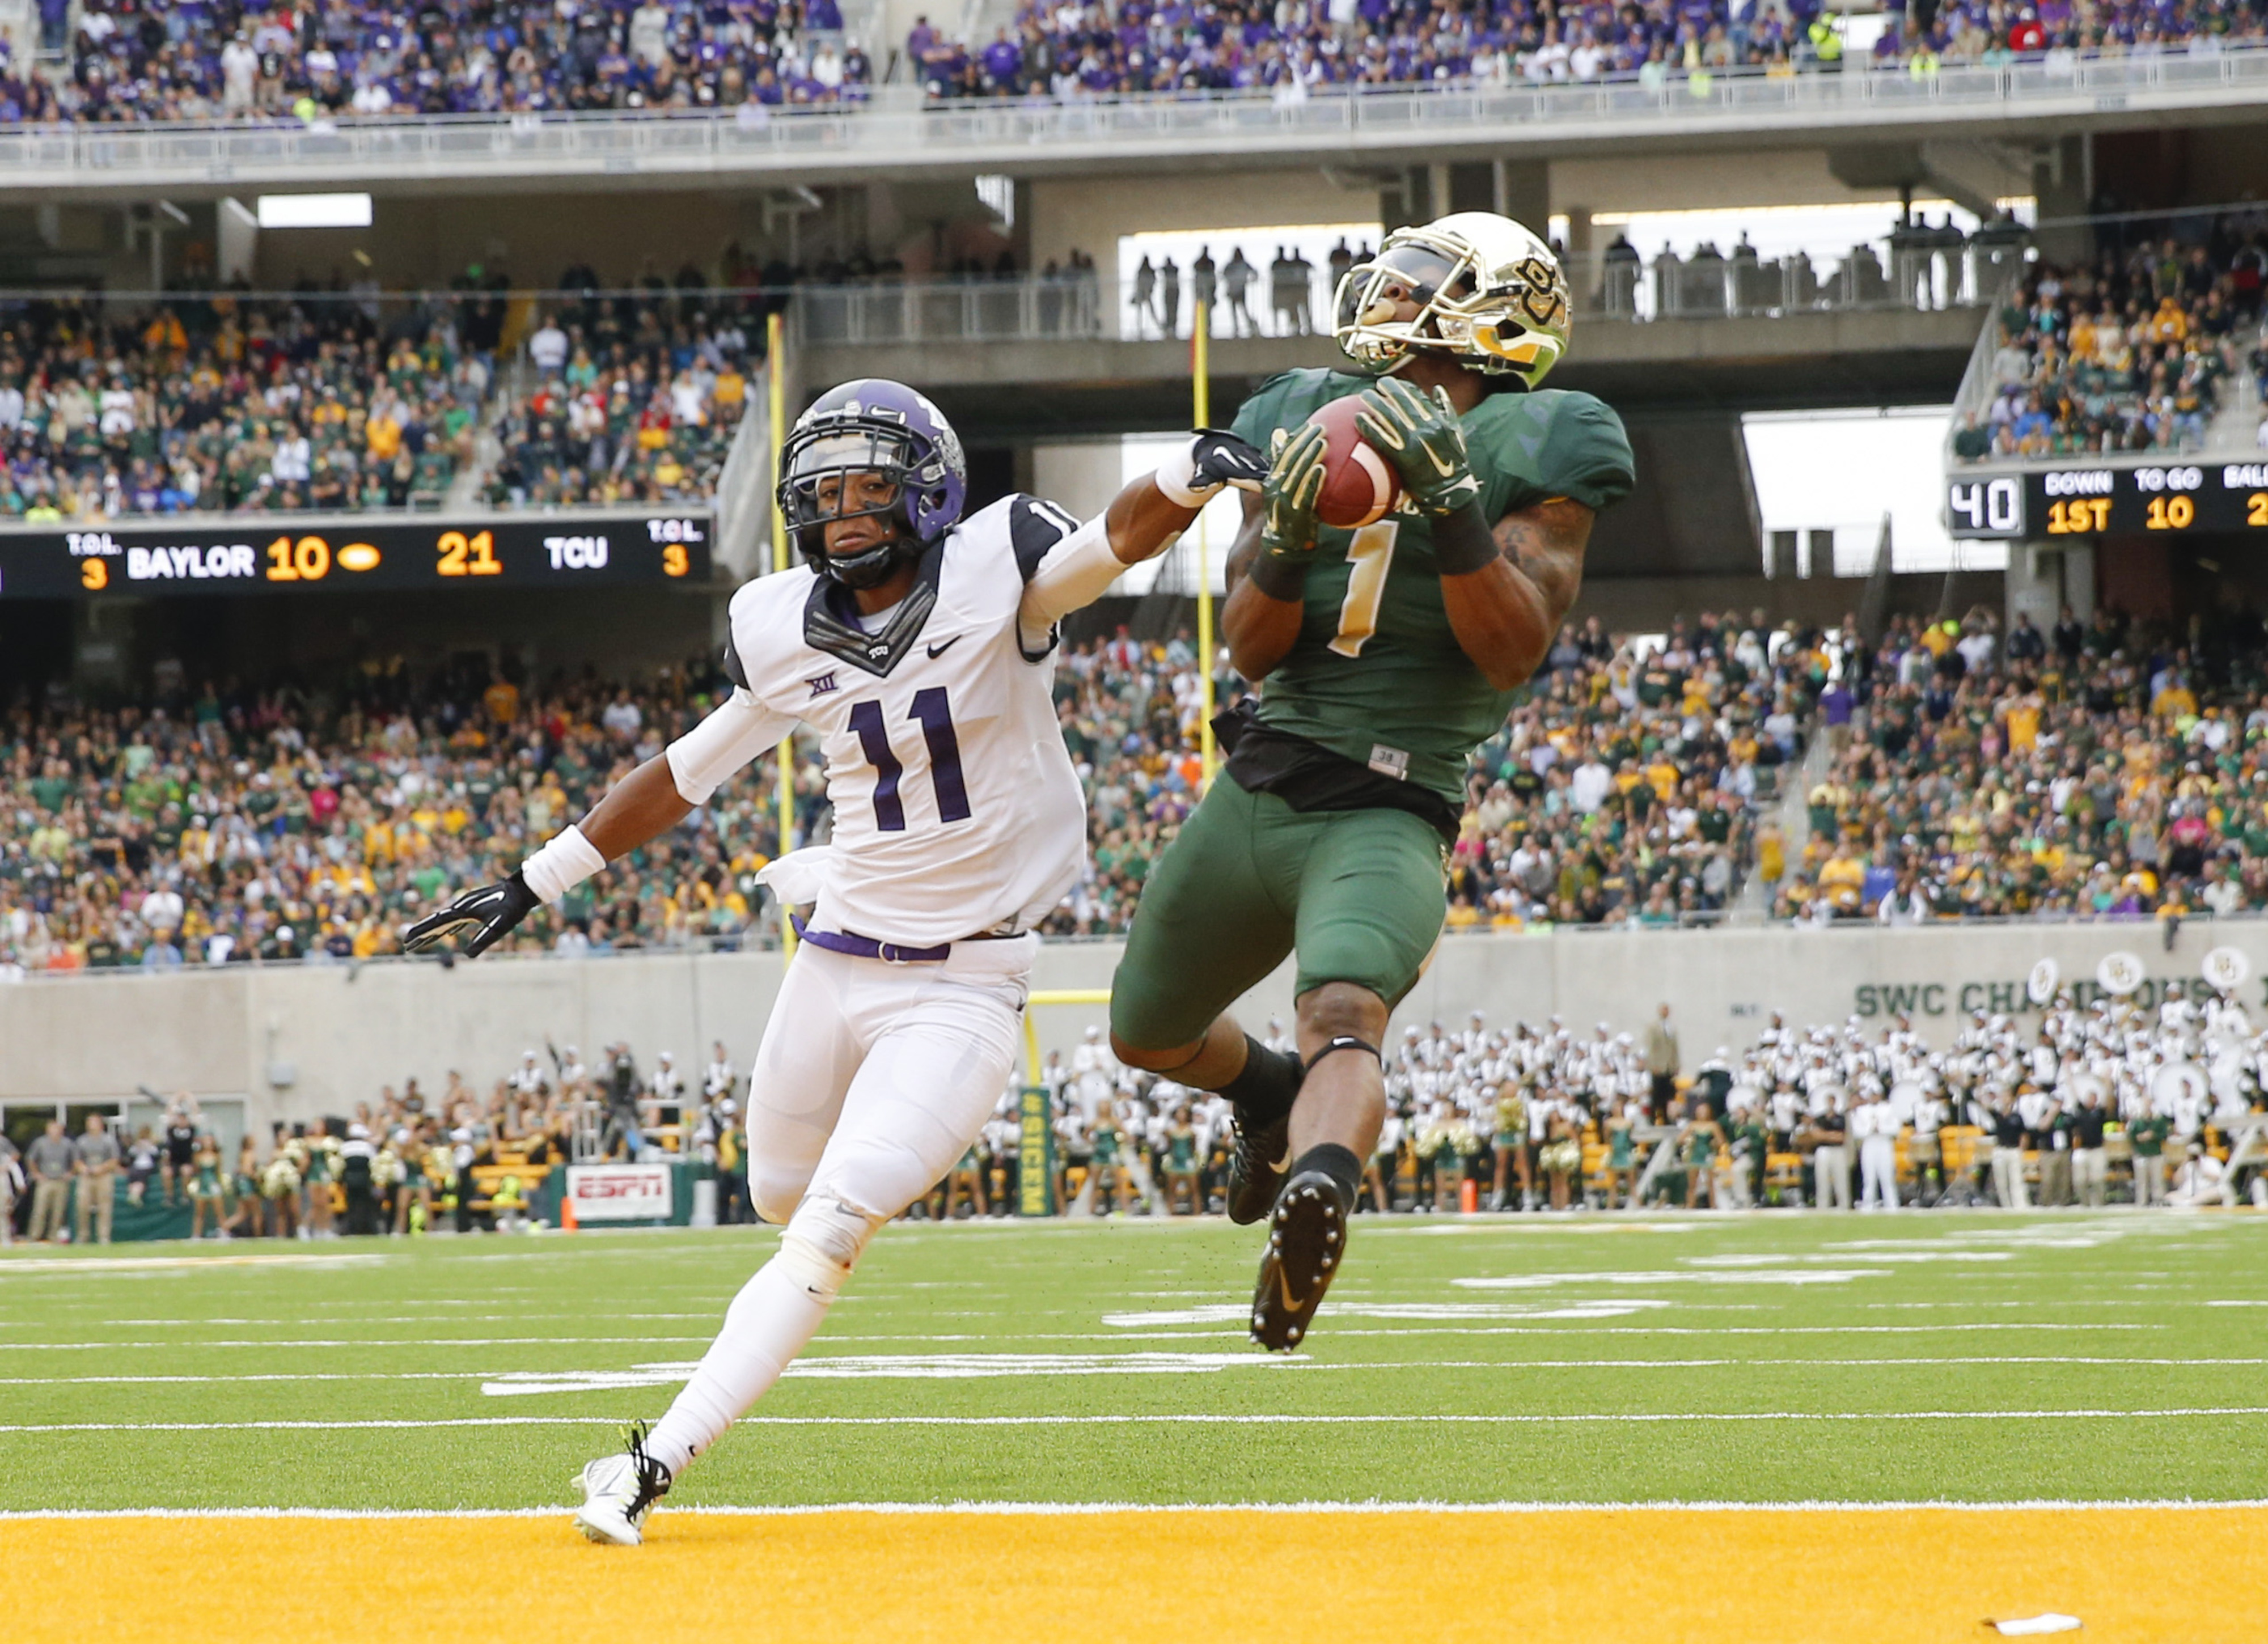 5-Year Anniversary: Baylor Scores Game's Final 24 Points to Slip Past TCU in Top-10 Shootout